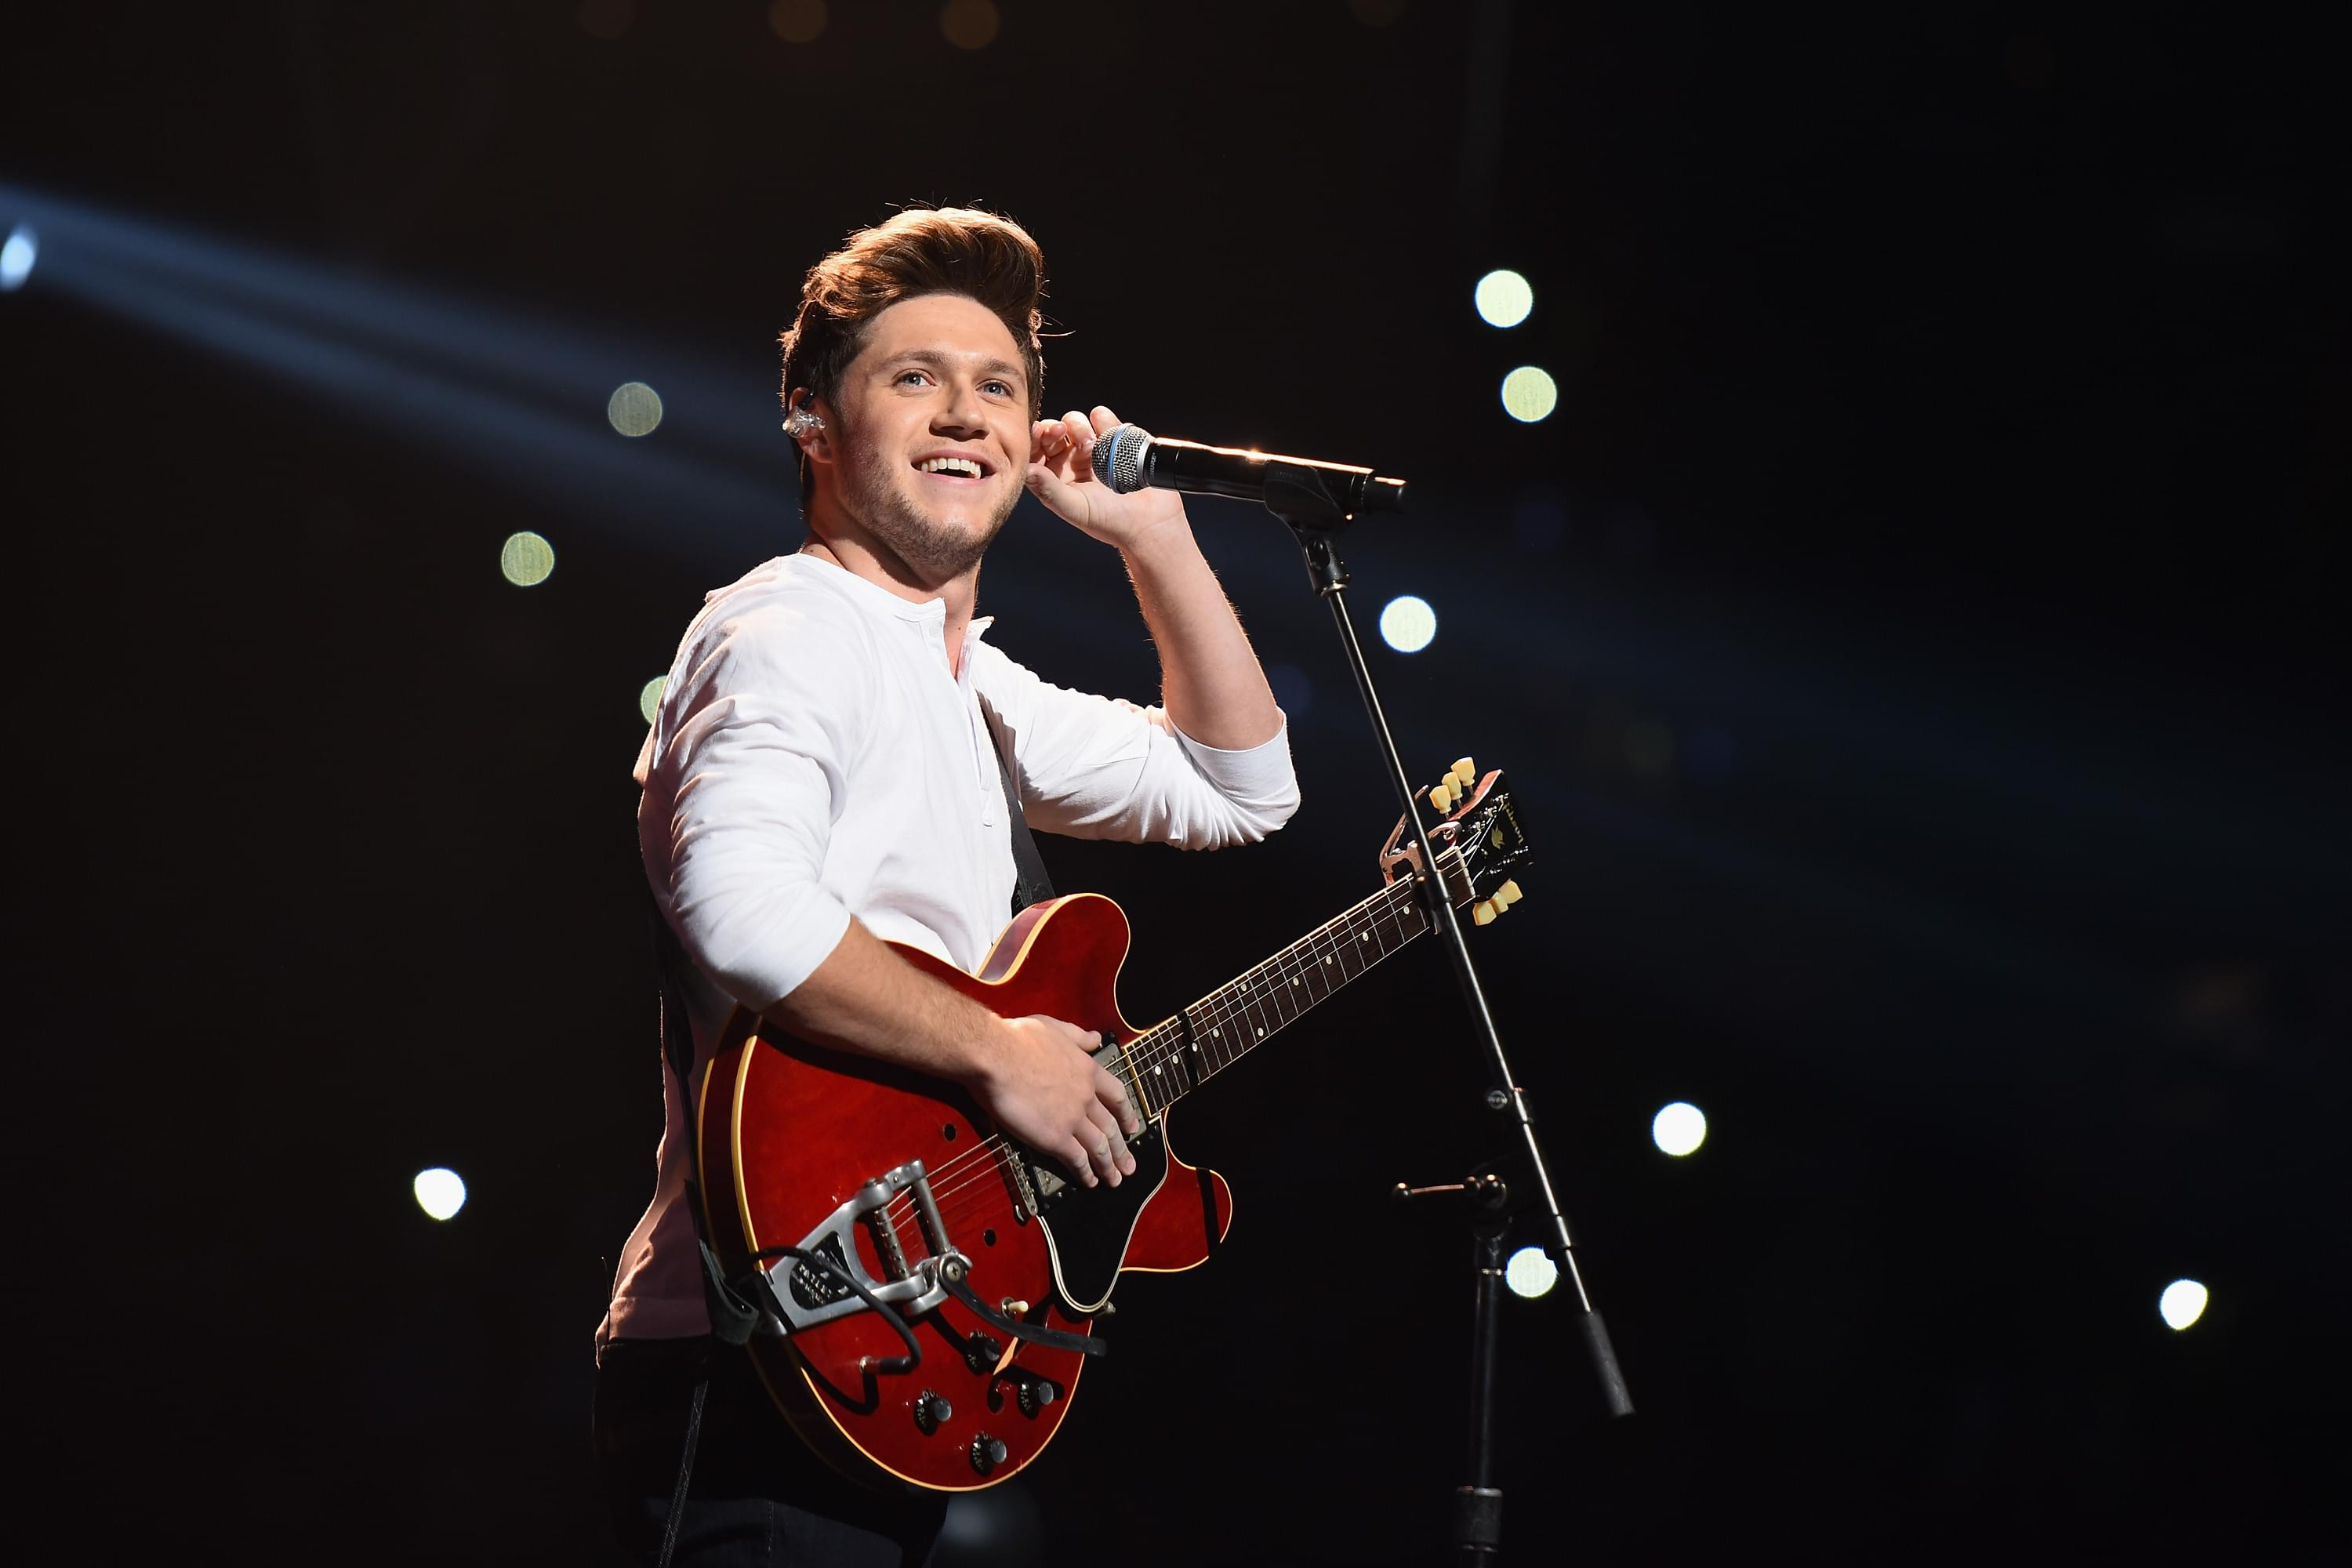 Nial Horan @ Chevy Court | September 3rd